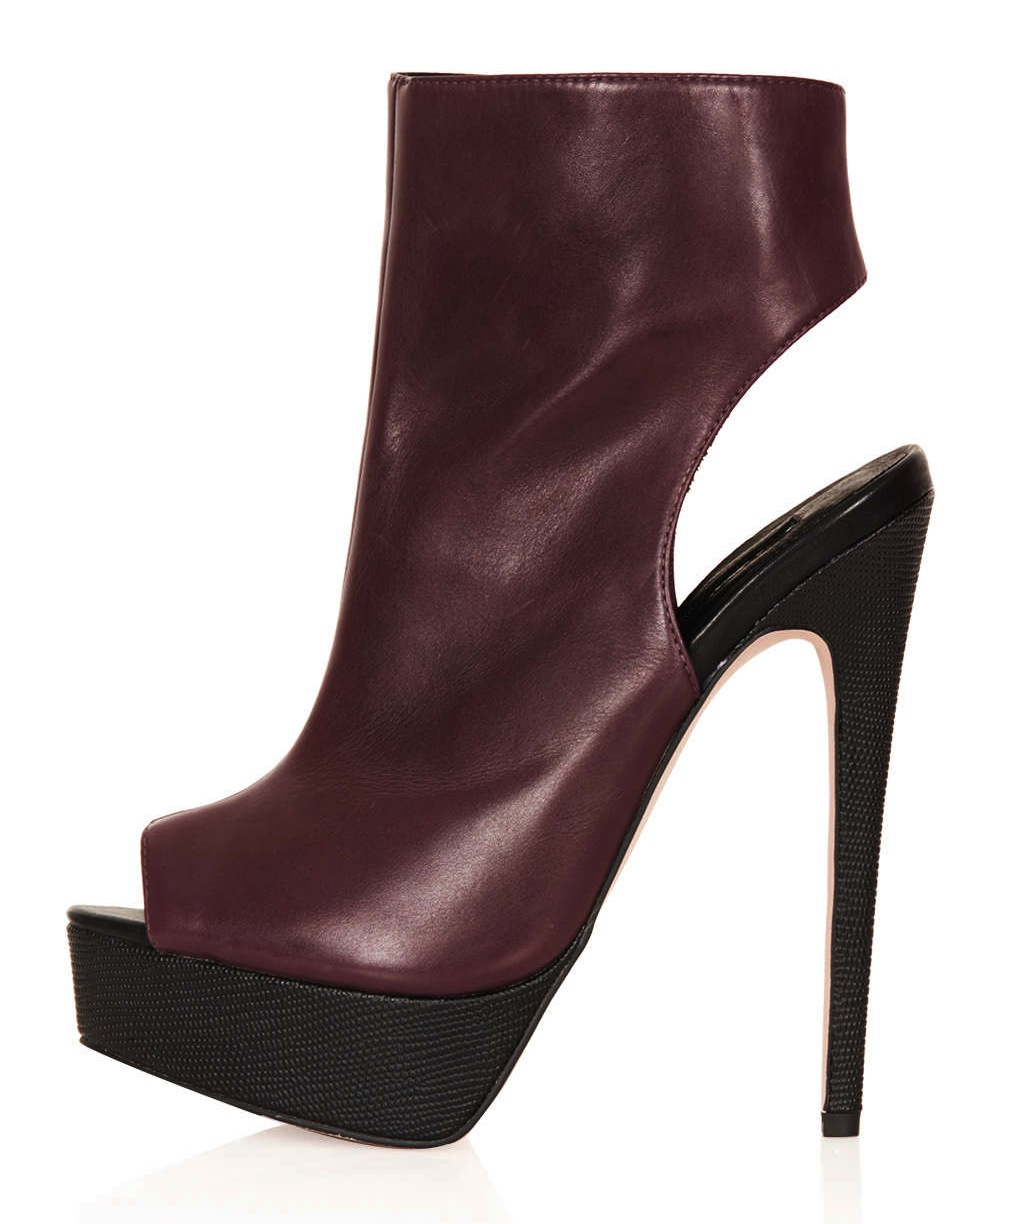 topshop-absinth-stiletto-cut-out-boots